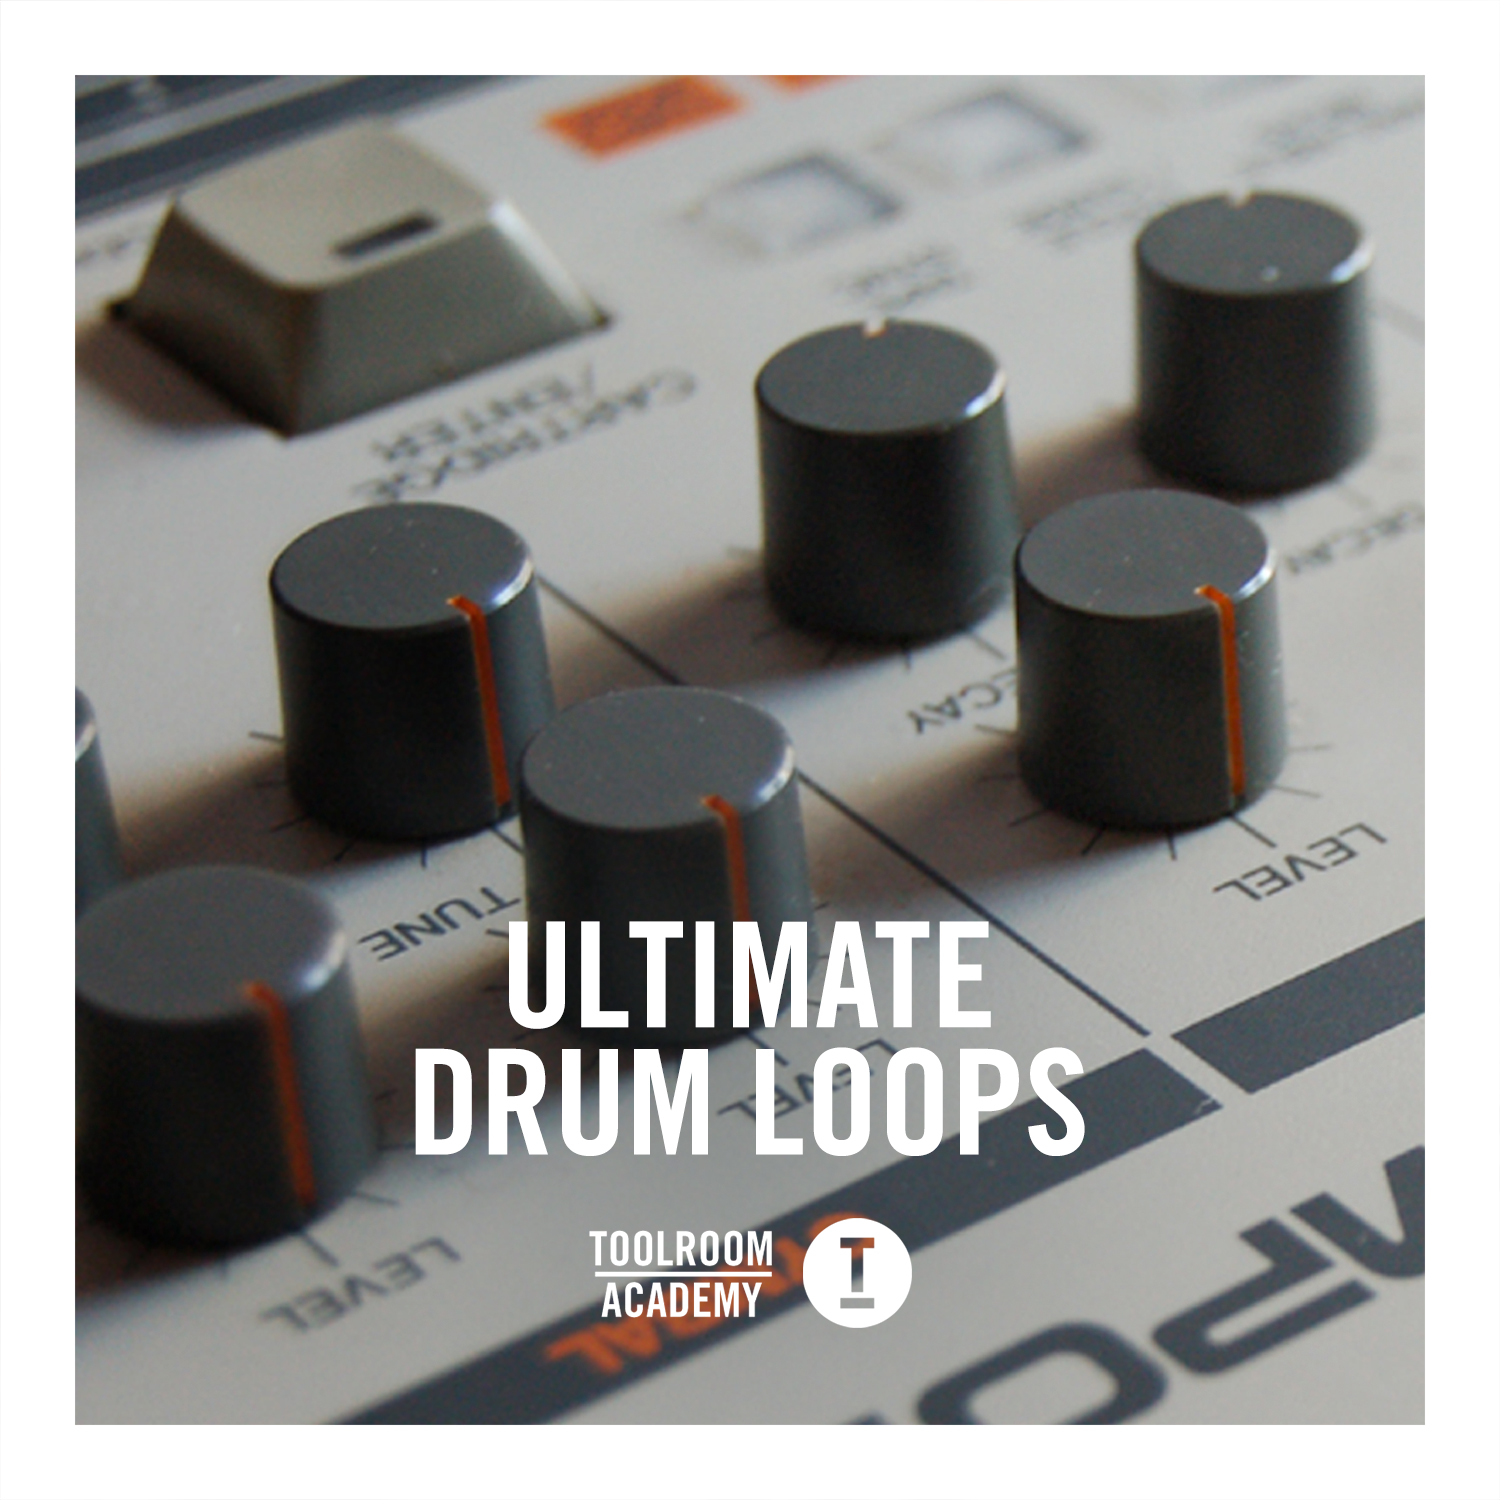 Toolroom  Ultimate Drum Loops